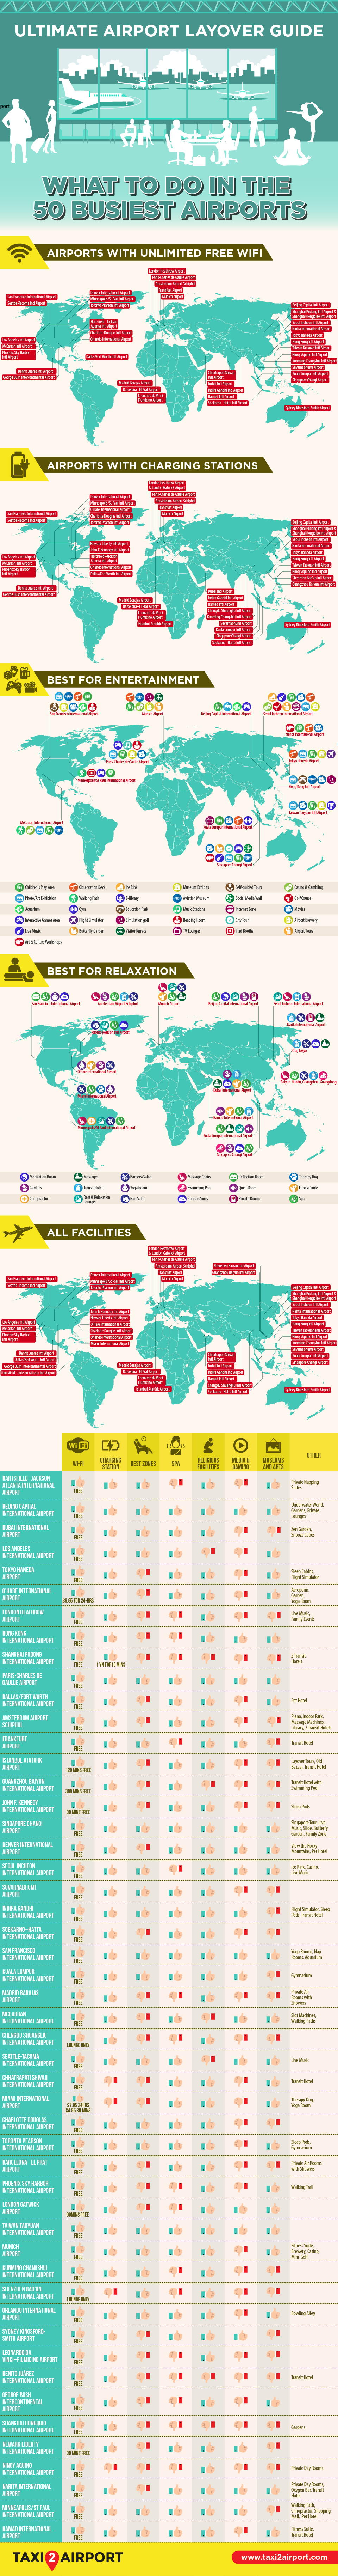 Airport-Layover-Guide